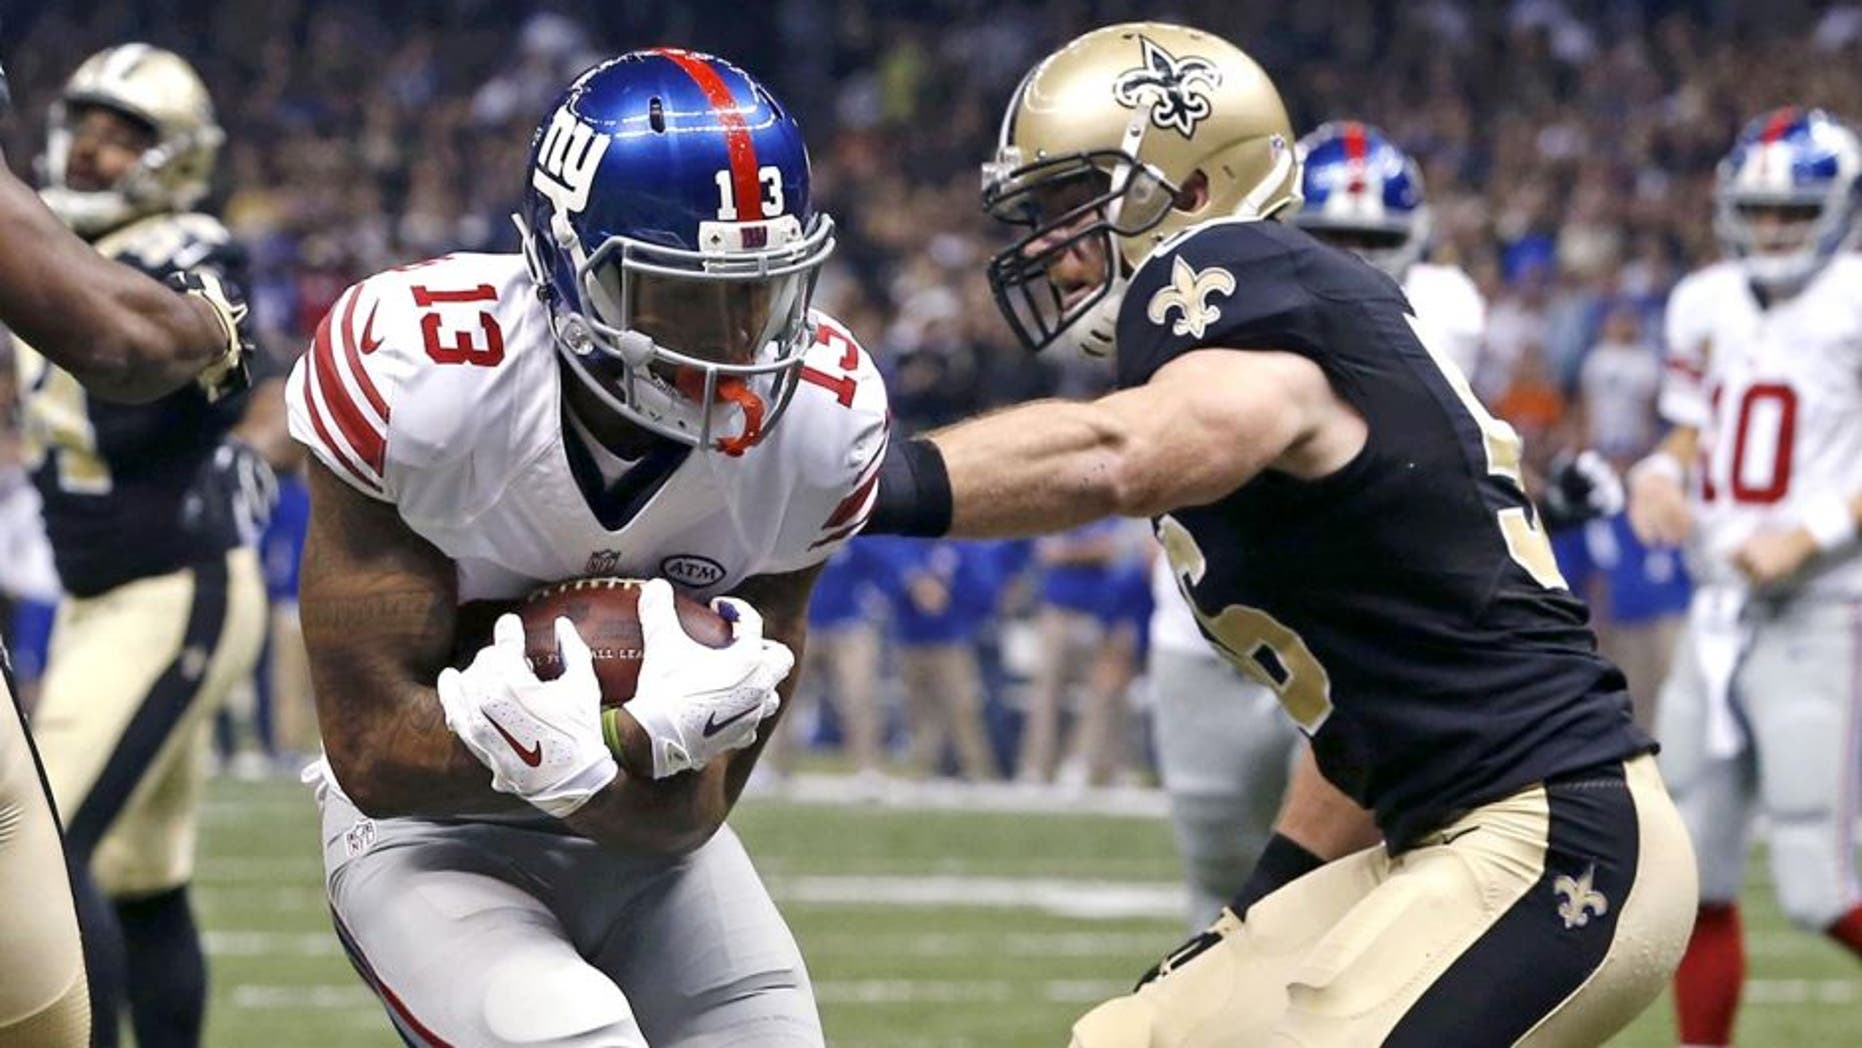 New York Giants wide receiver Odell Beckham (13) pulls in a touchdown reception in front of New Orleans Saints cornerback Delvin Breaux (40) in the first half of an NFL football game in New Orleans, Sunday, Nov. 1, 2015. (AP Photo/Jonathan Bachman)